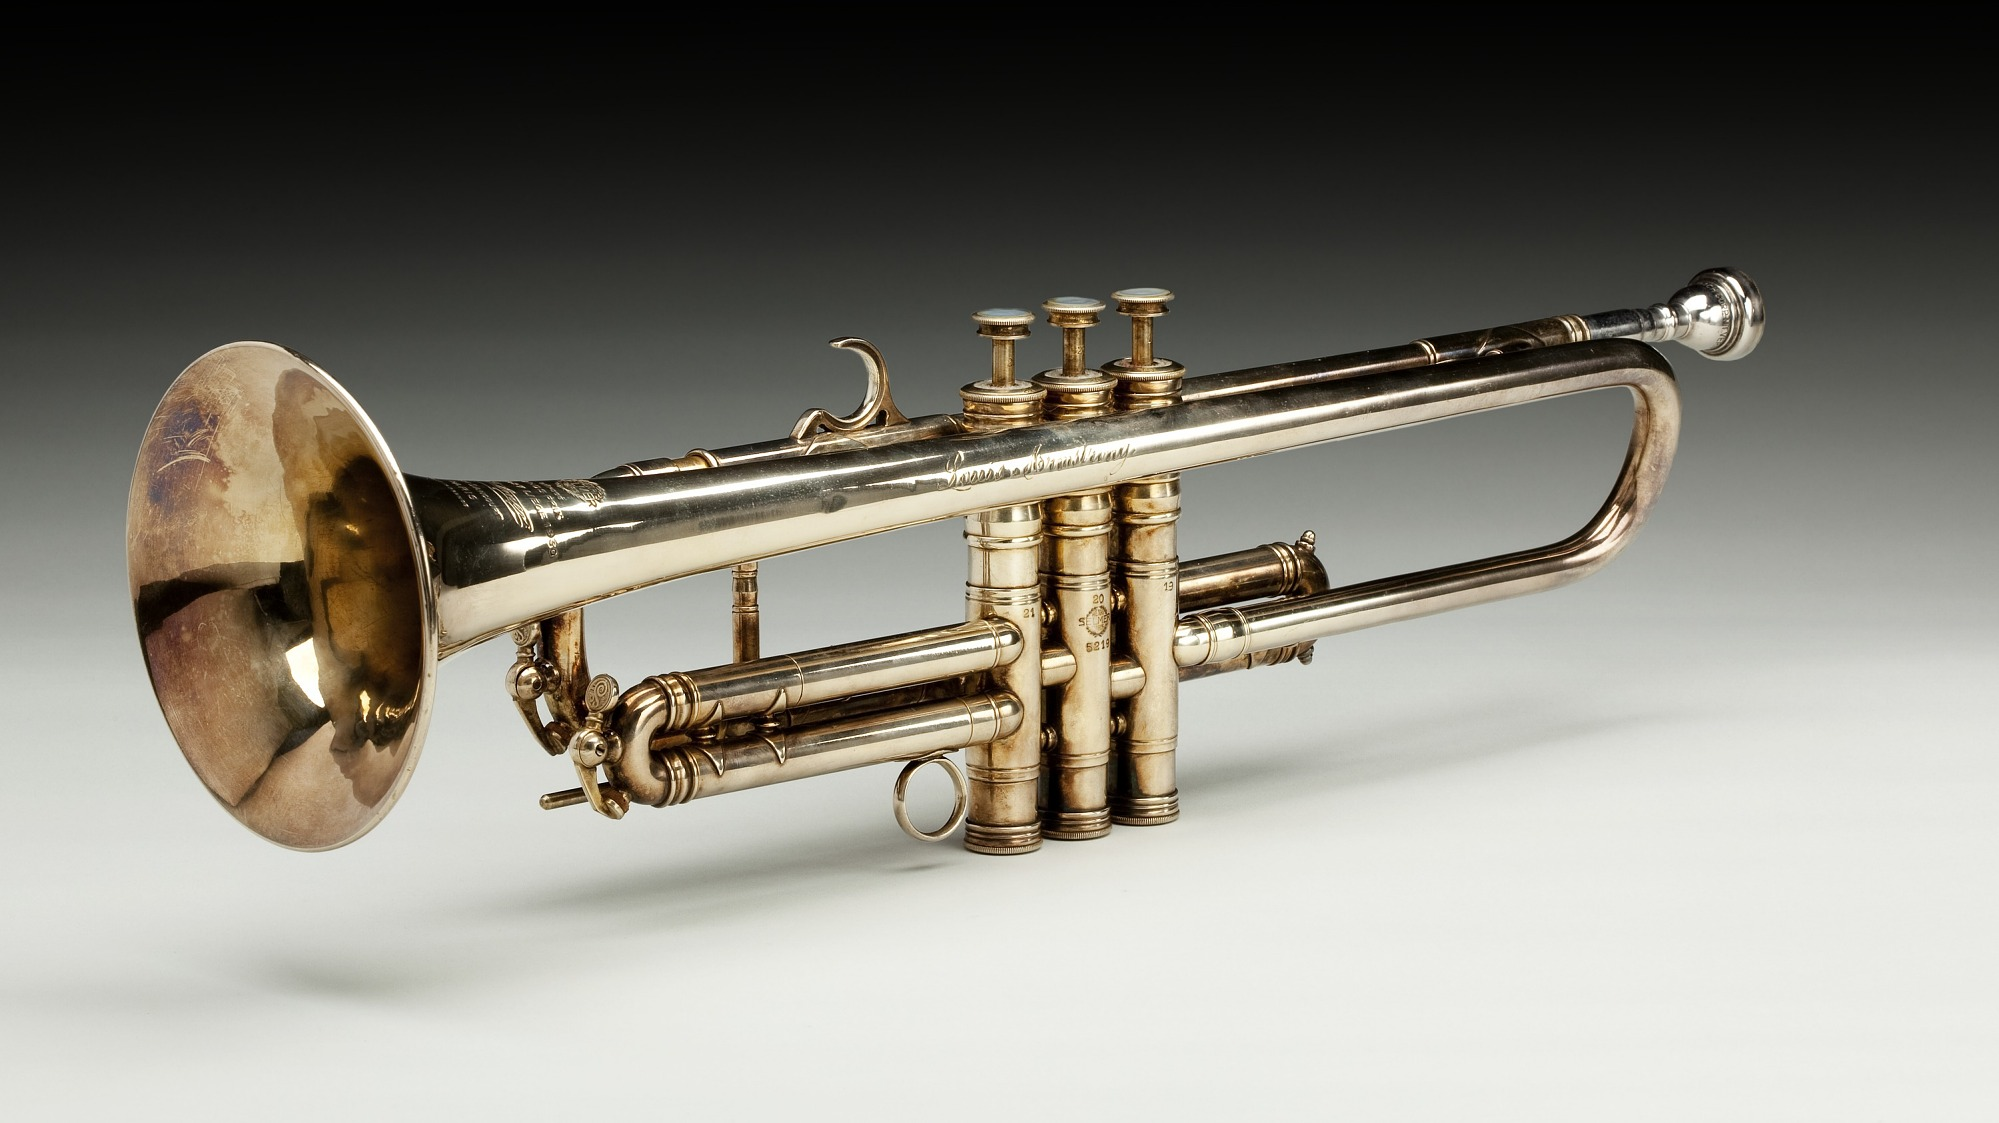 images for Trumpet owned by Louis Armstrong